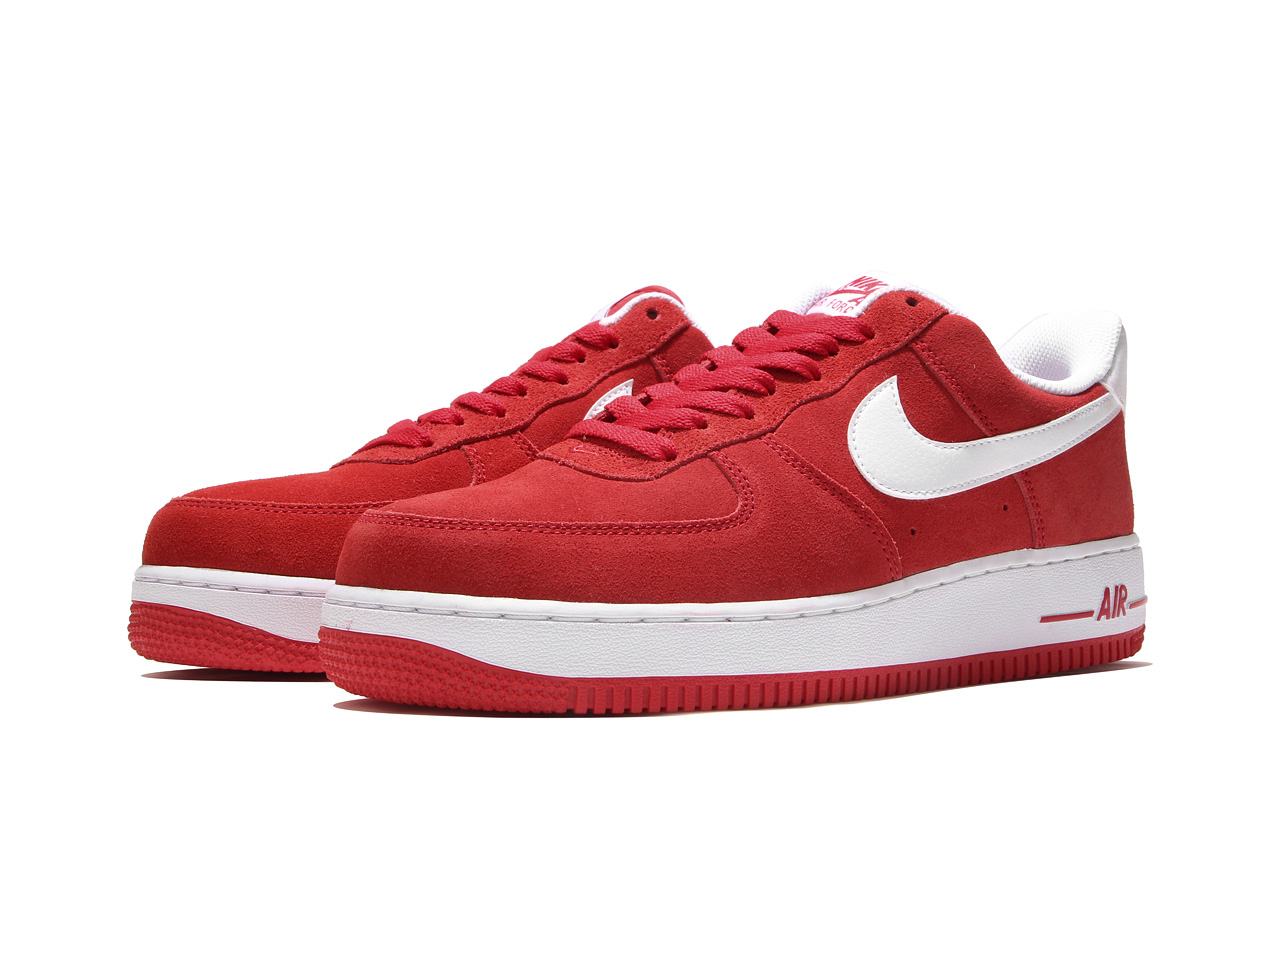 NIKE AIR FORCE 1 '07 (315,122-612) UNIVERSITY RED/WHITE